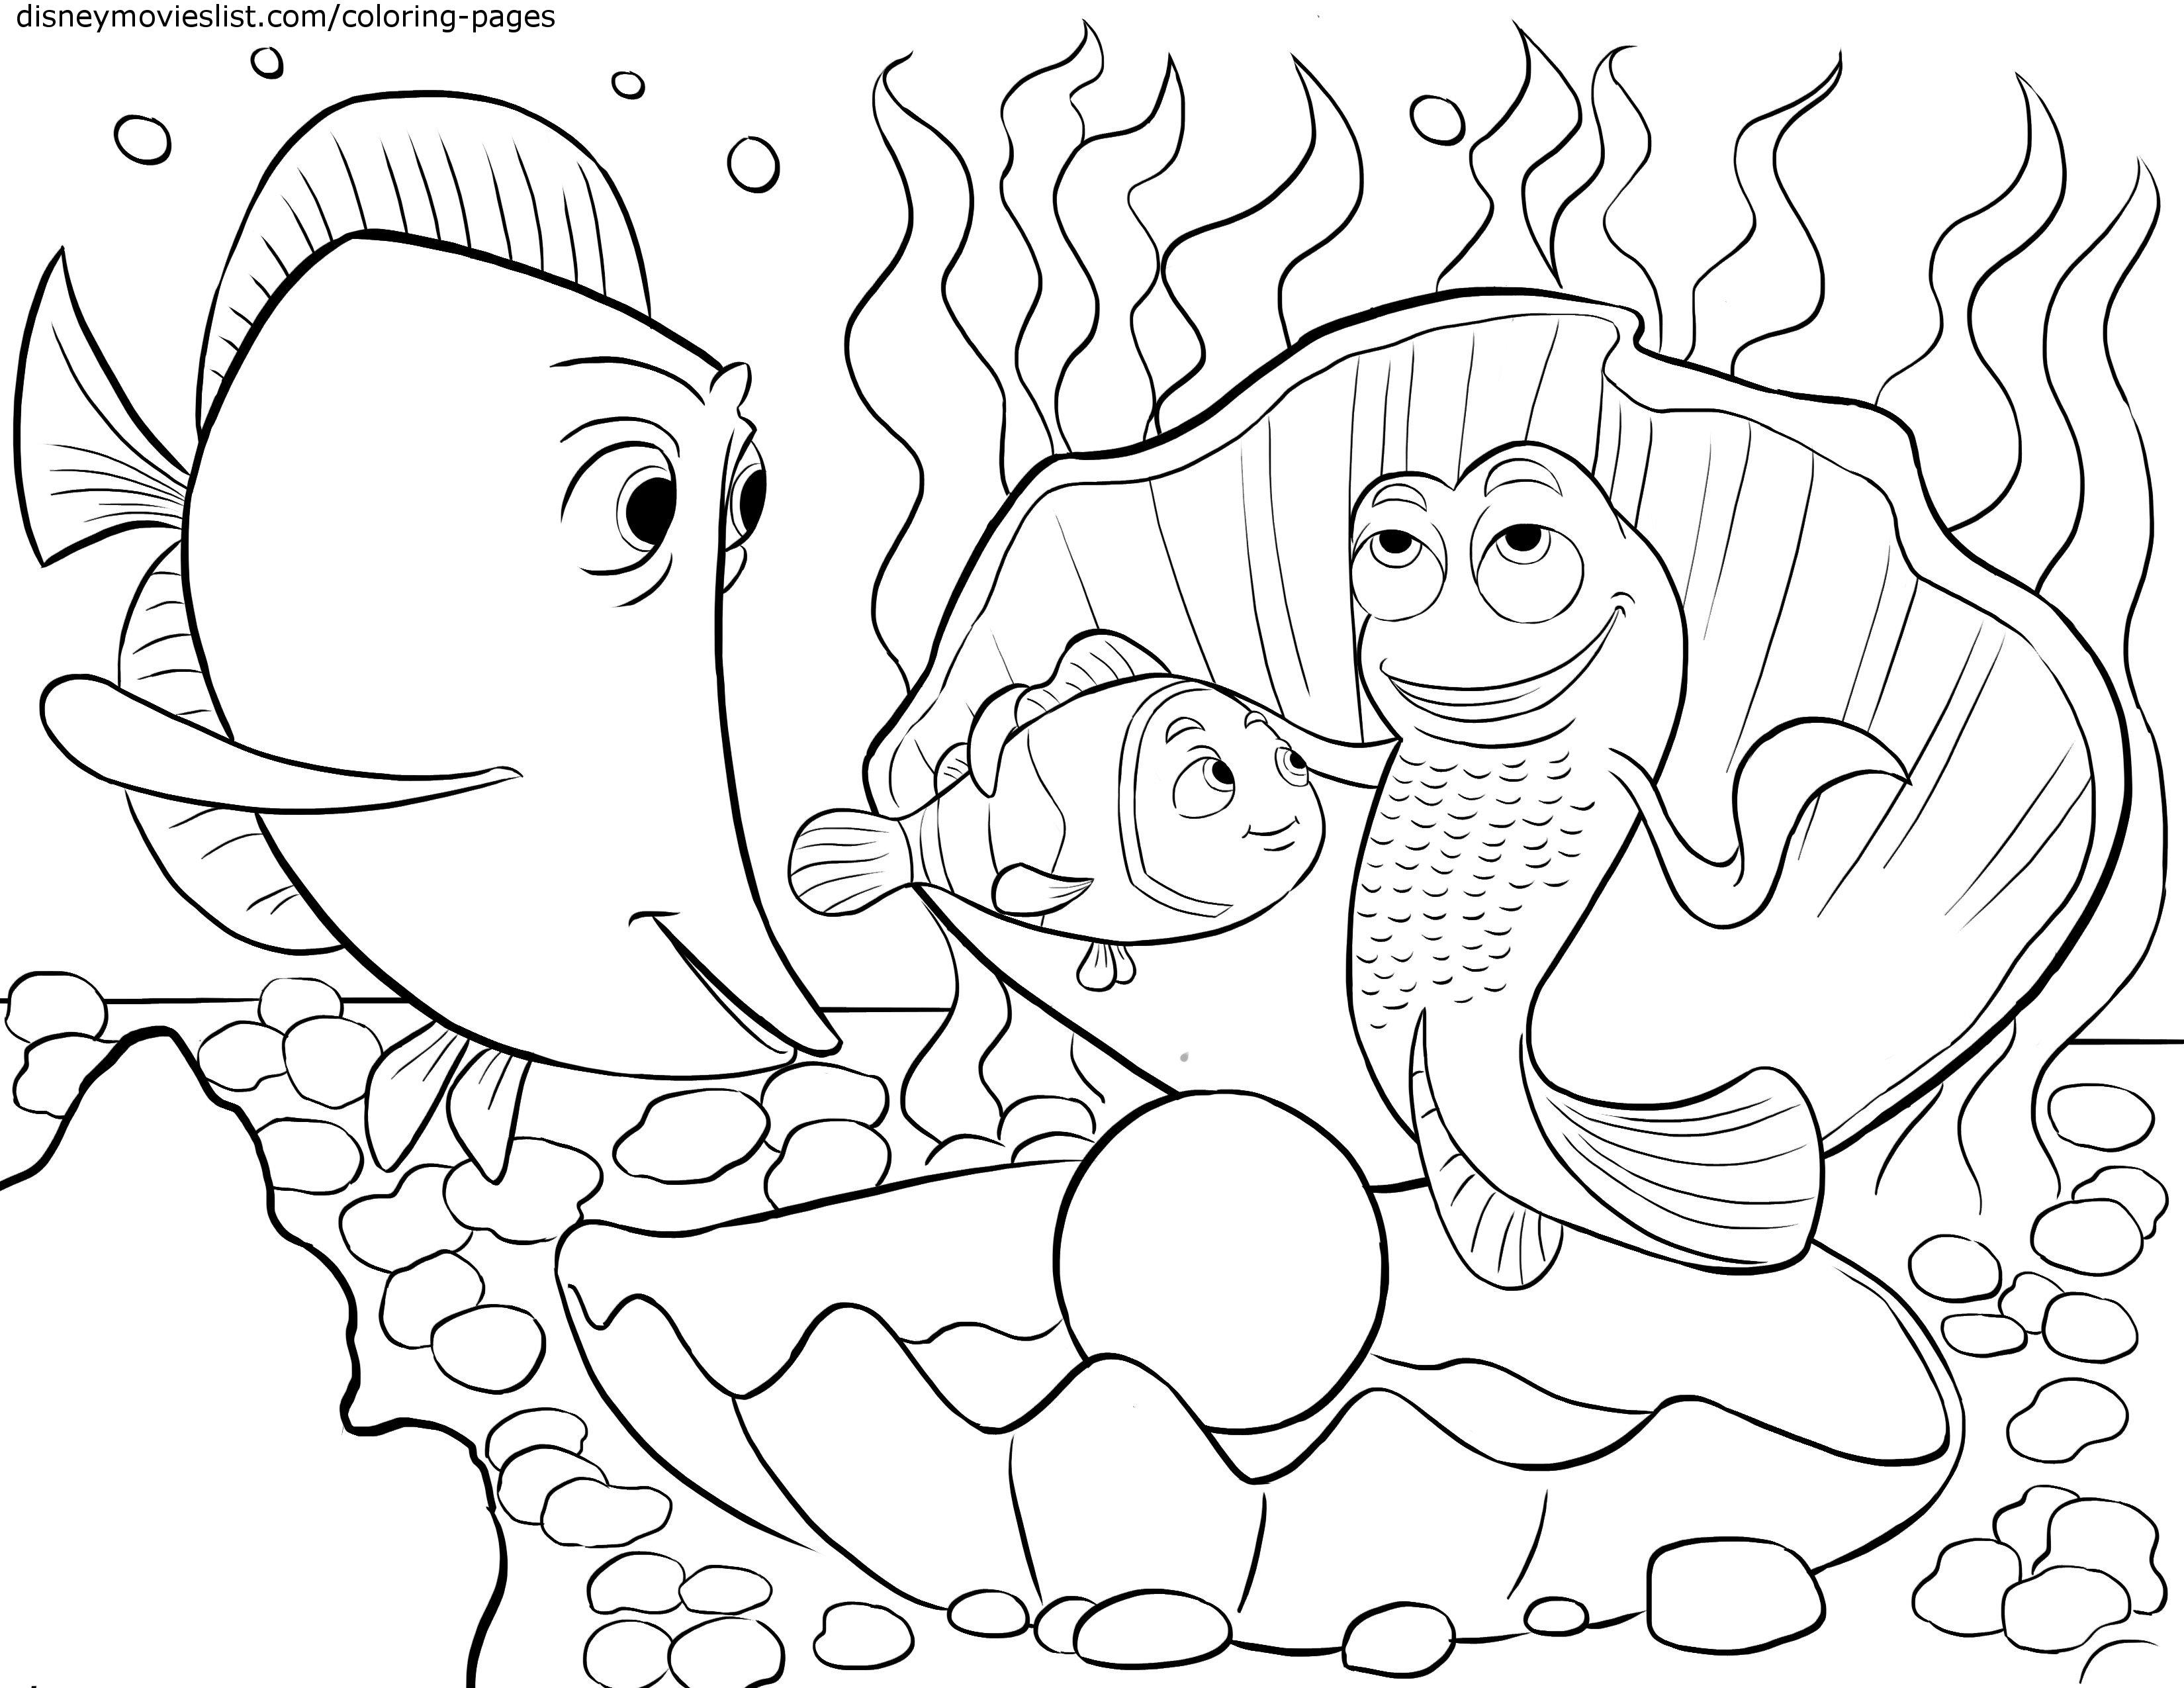 Coloring Pages For Kids Pdf at GetDrawings.com | Free for ...